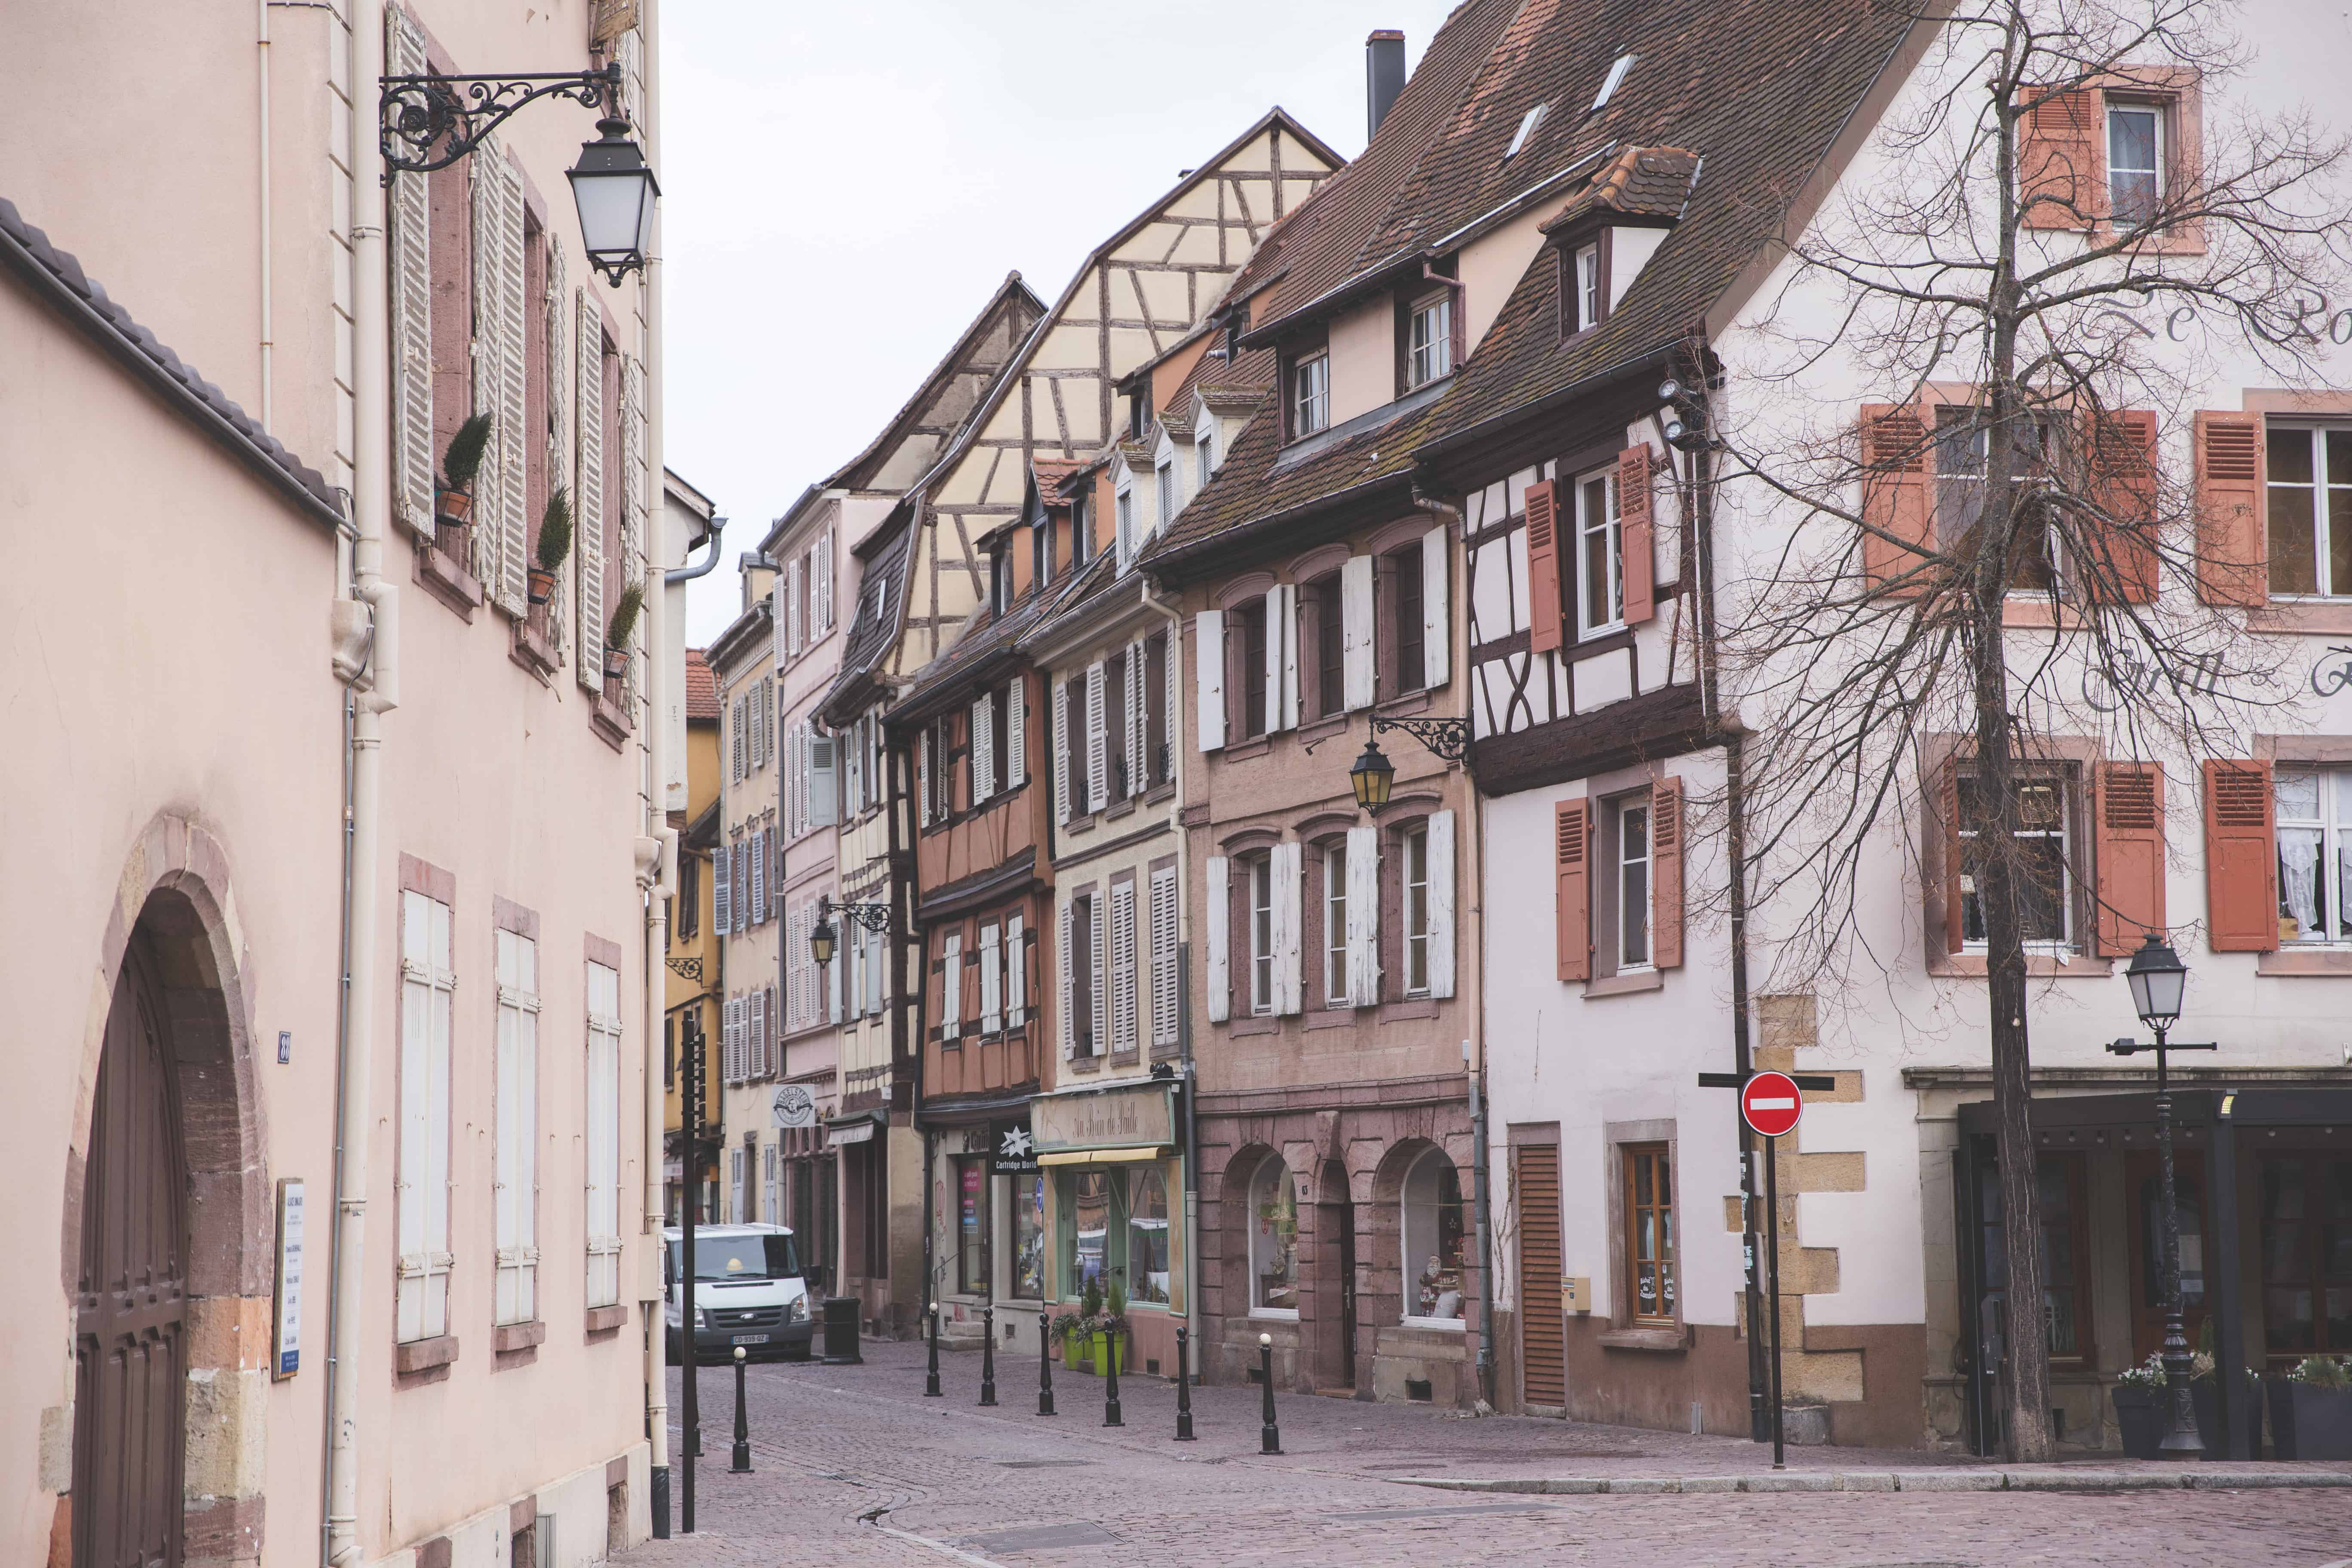 Colmar, France is an easy day trip from Basel, Switzerland and is full of colorful buildings and houses